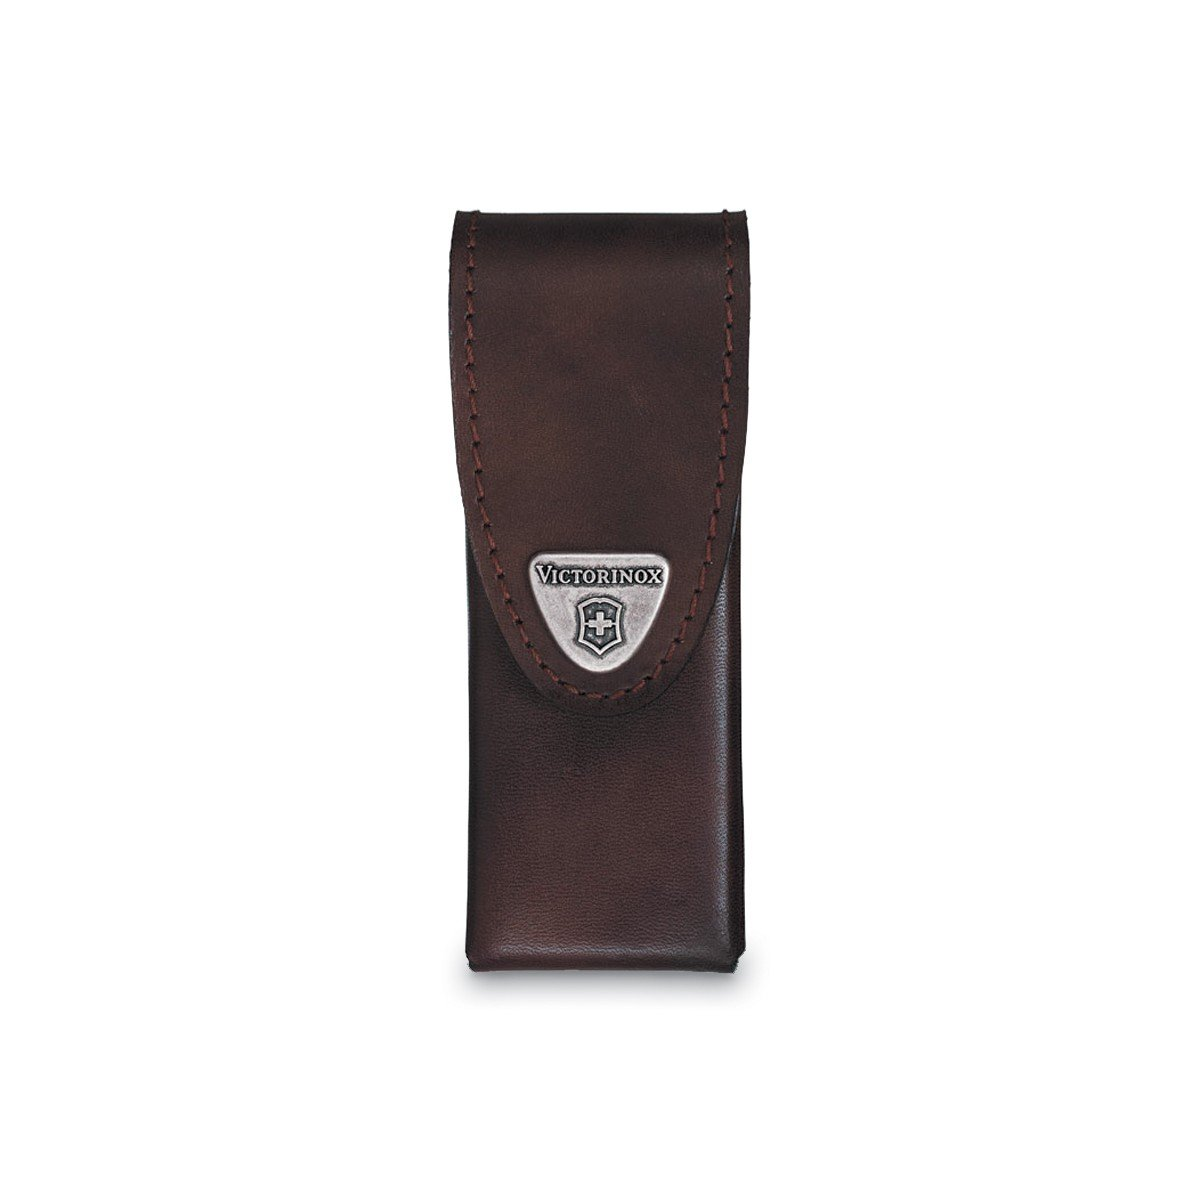 Victorinox Swiss Army SwissTool Spirit Multi-Tool, Includes Leather Pouch by Victorinox (Image #3)